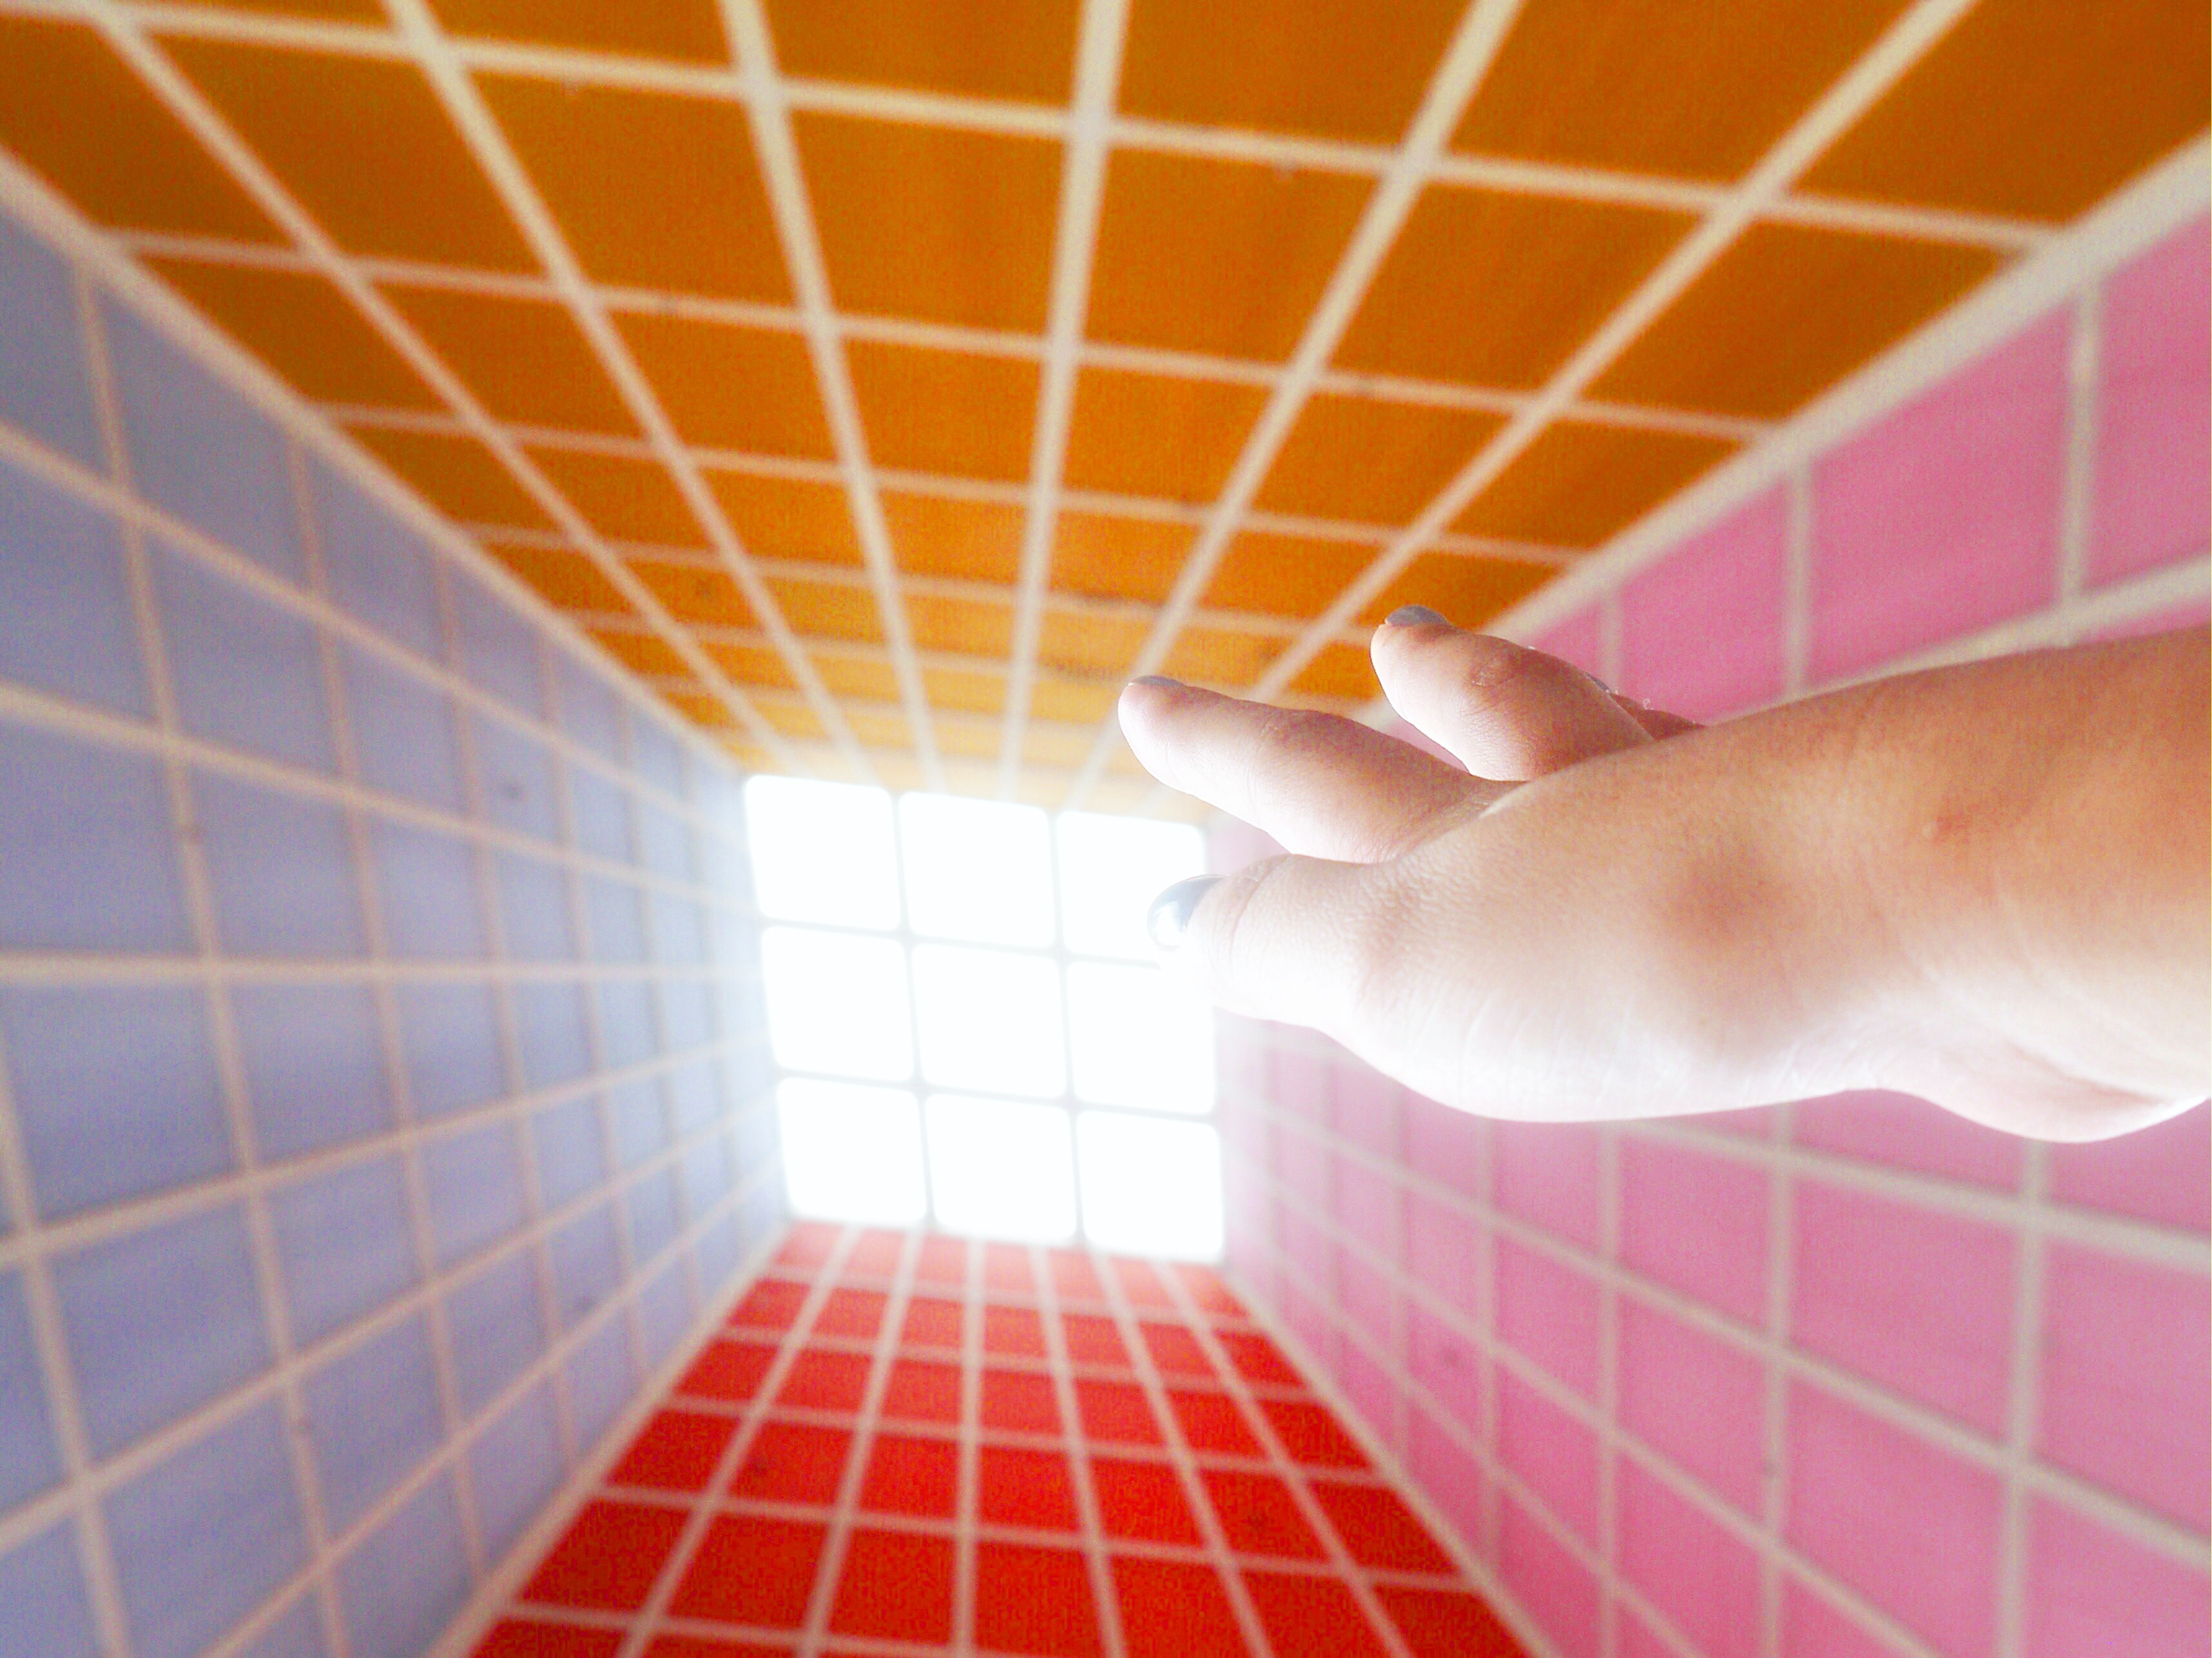 A hand reaching up to a sky-lit window in a room surrounded by four different color walls with box patterns.